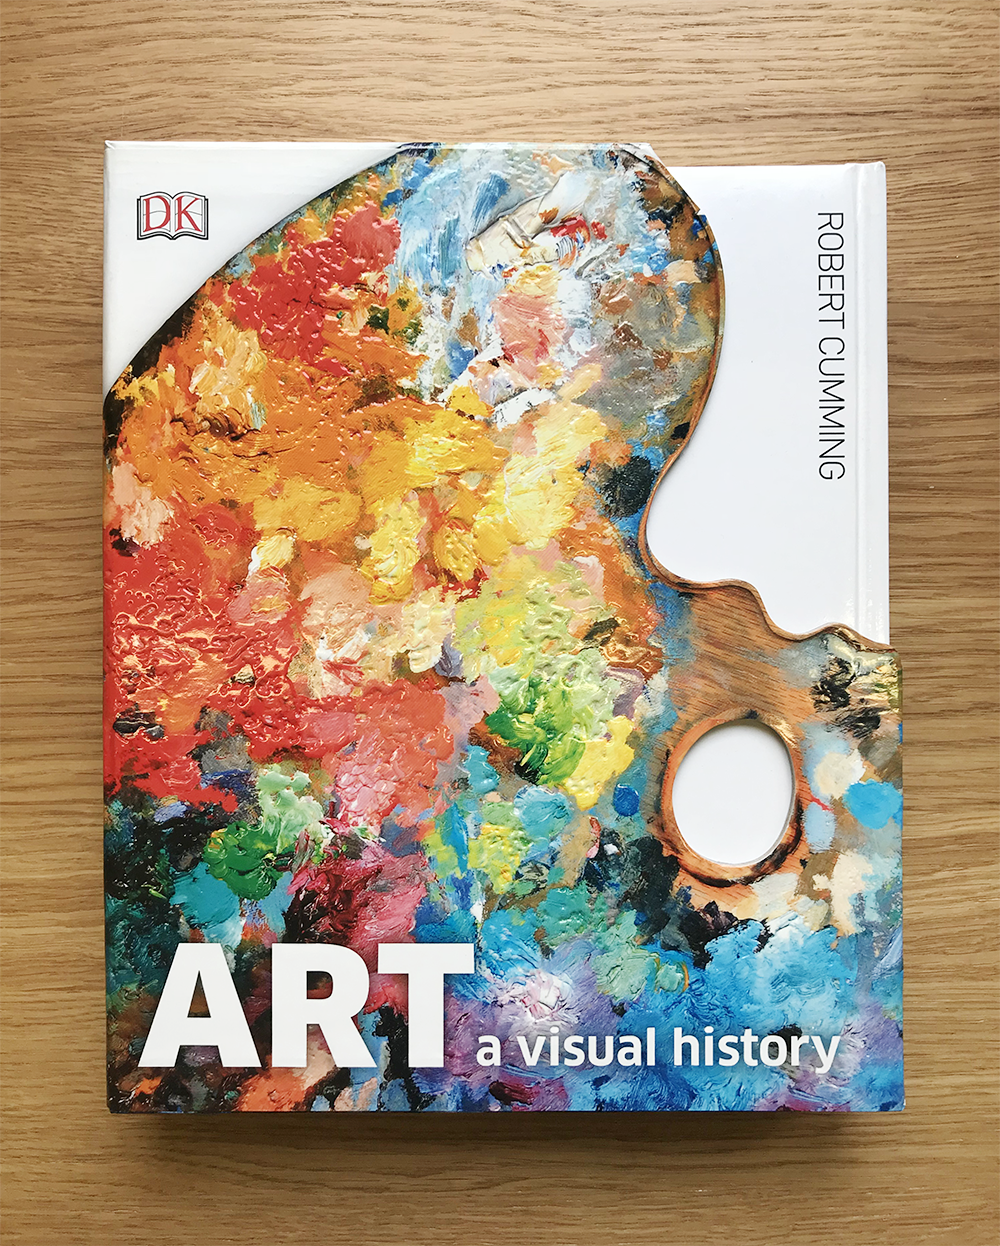 Art: A Visual History by DK